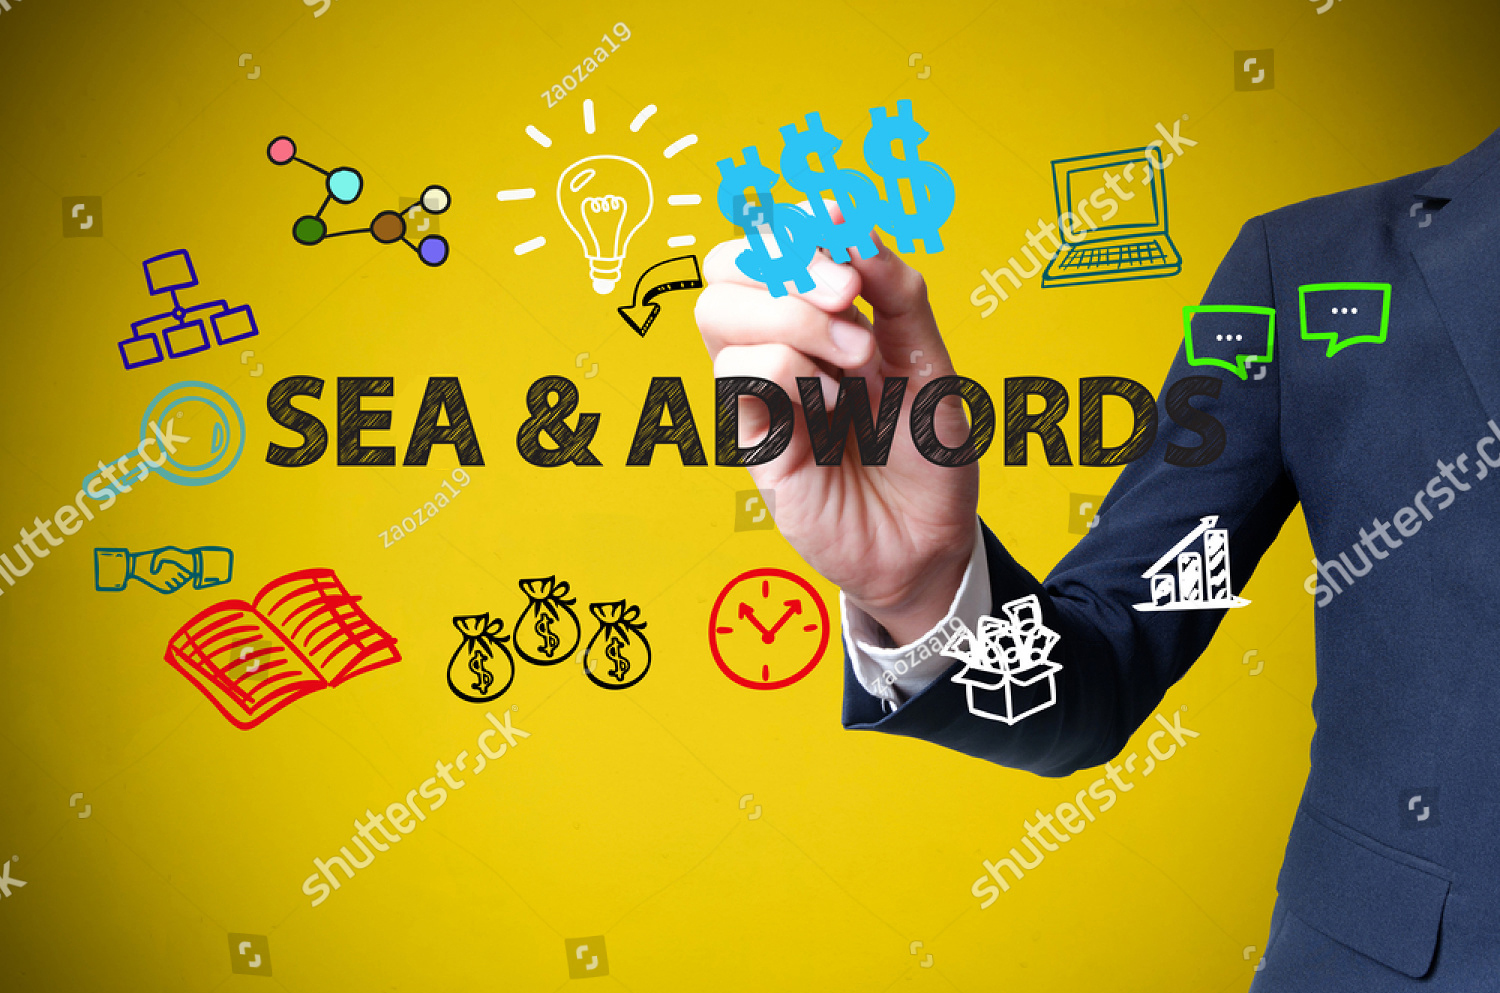 stock-photo-businessman-hand-drawing-and-writing-seo-adwords-on-yellow-background-business-concept-352857473